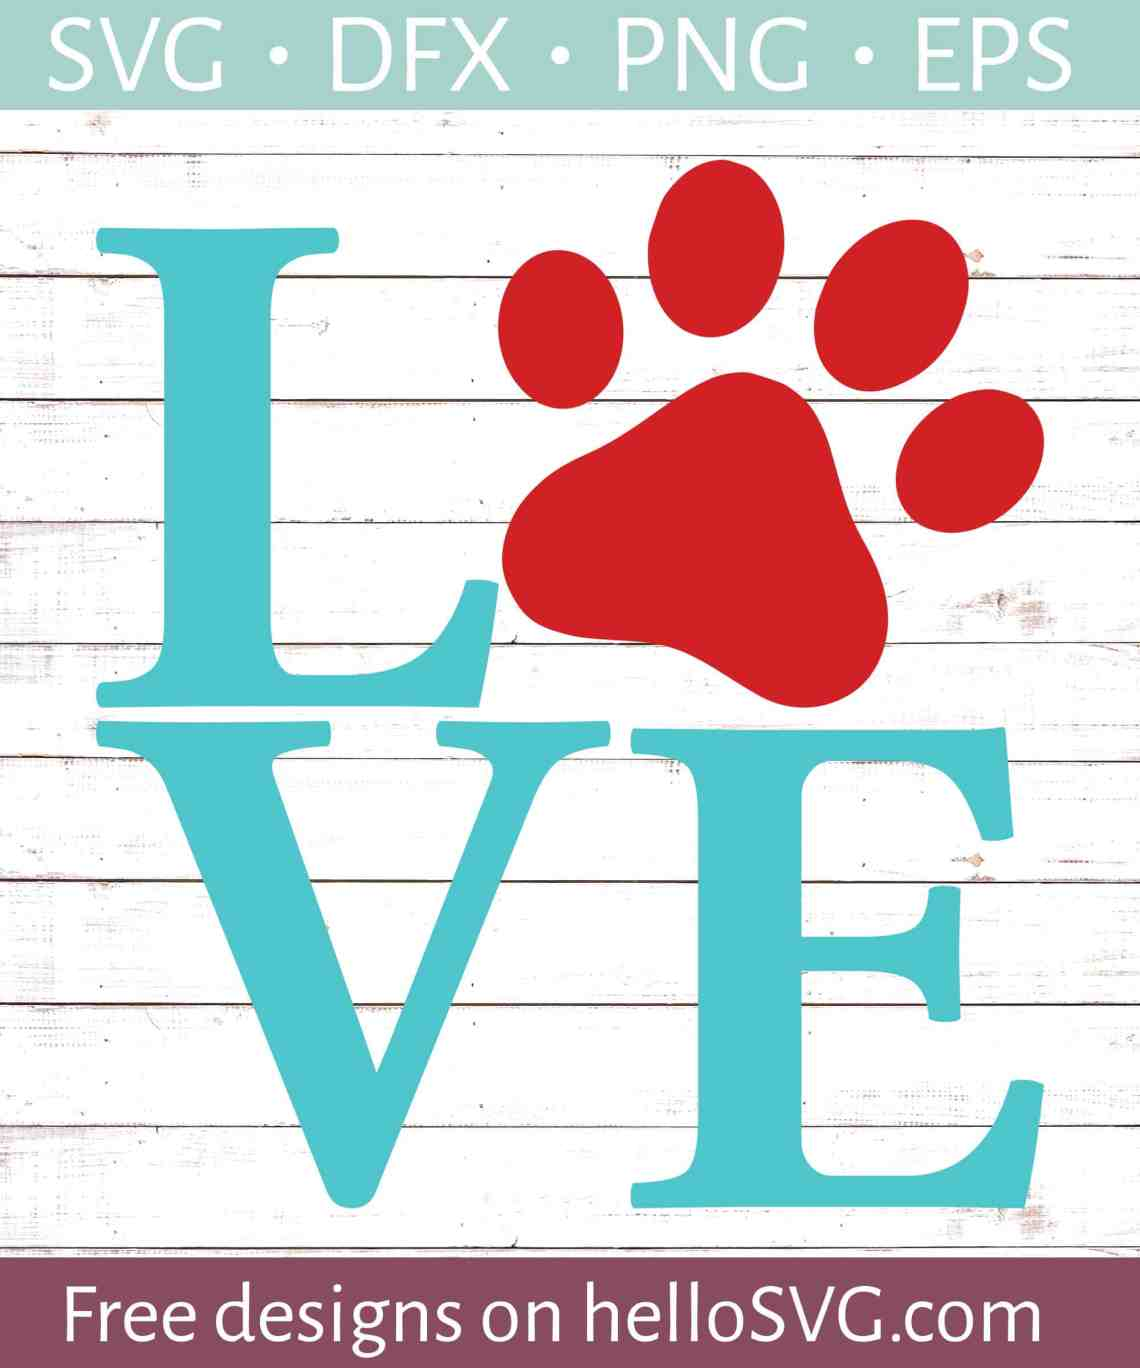 Download LOVE with Paw Print #1 SVG - Free SVG files | HelloSVG.com